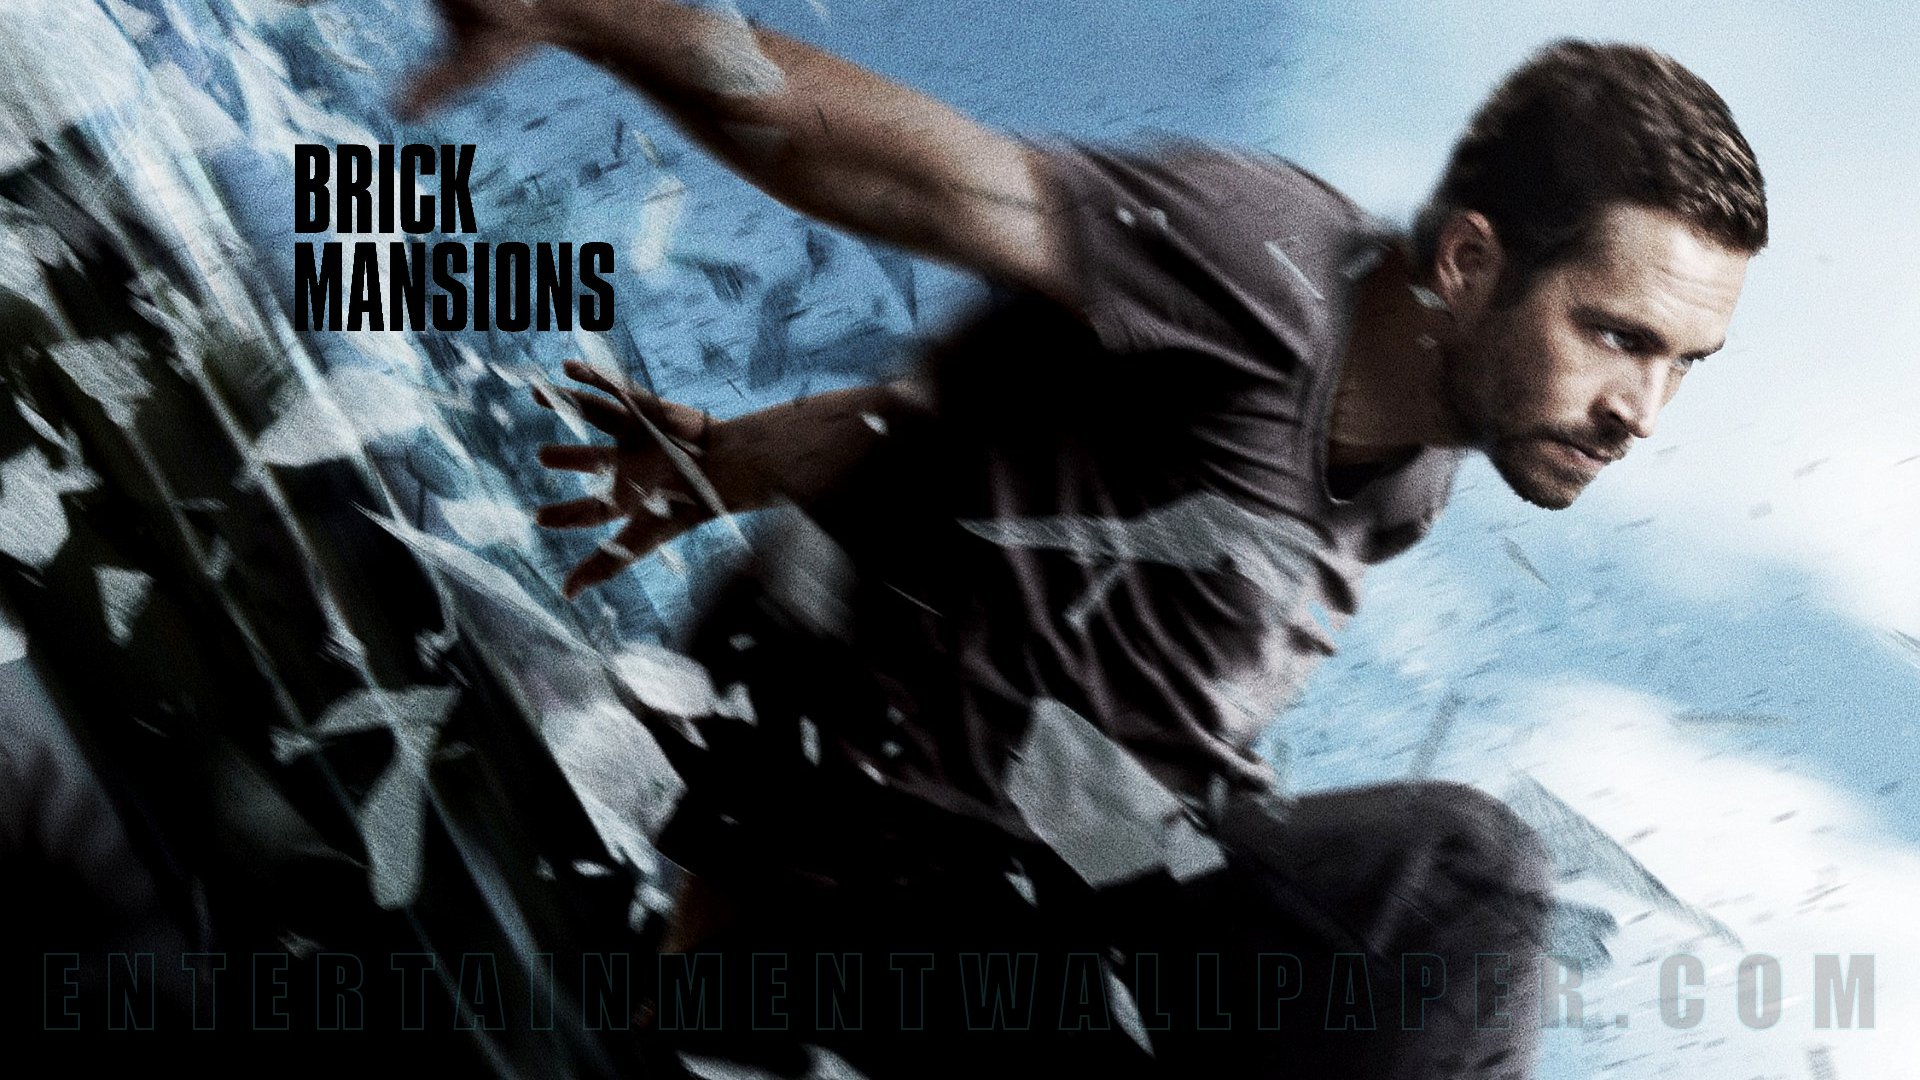 Brick Mansions Wallpaper - Original size, download now.